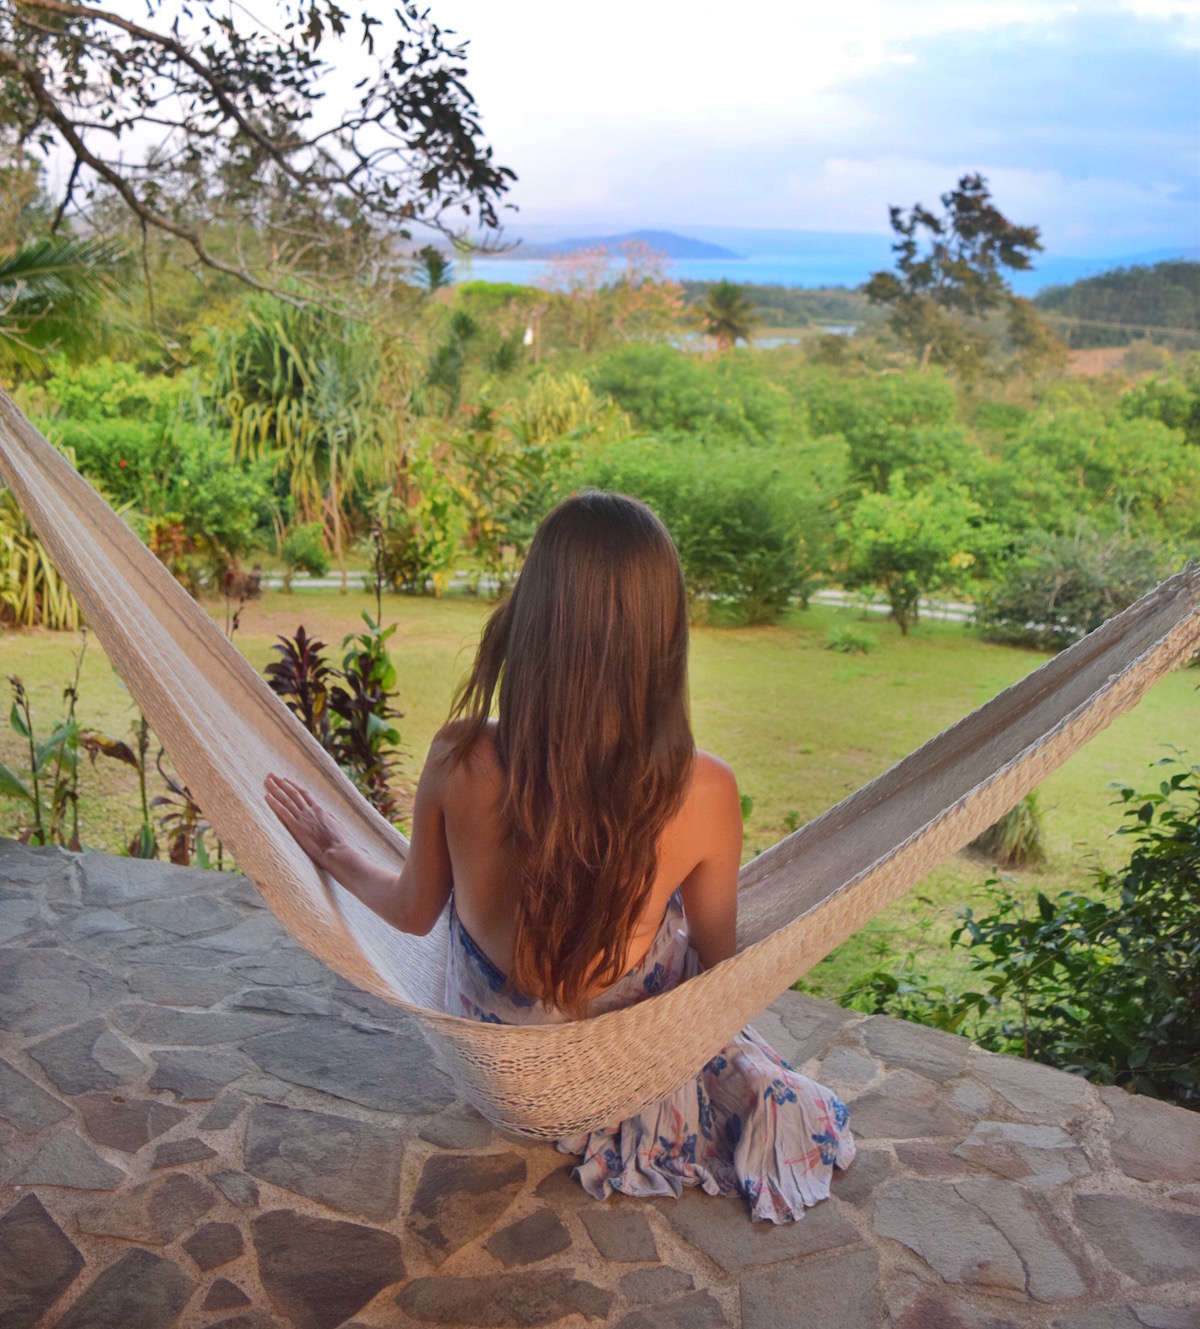 Enjoy the Pura Vida life. One of the best things to do in Costa Rica.   Tessa Juliette | Travel Where to Next http://travelwheretonext.com